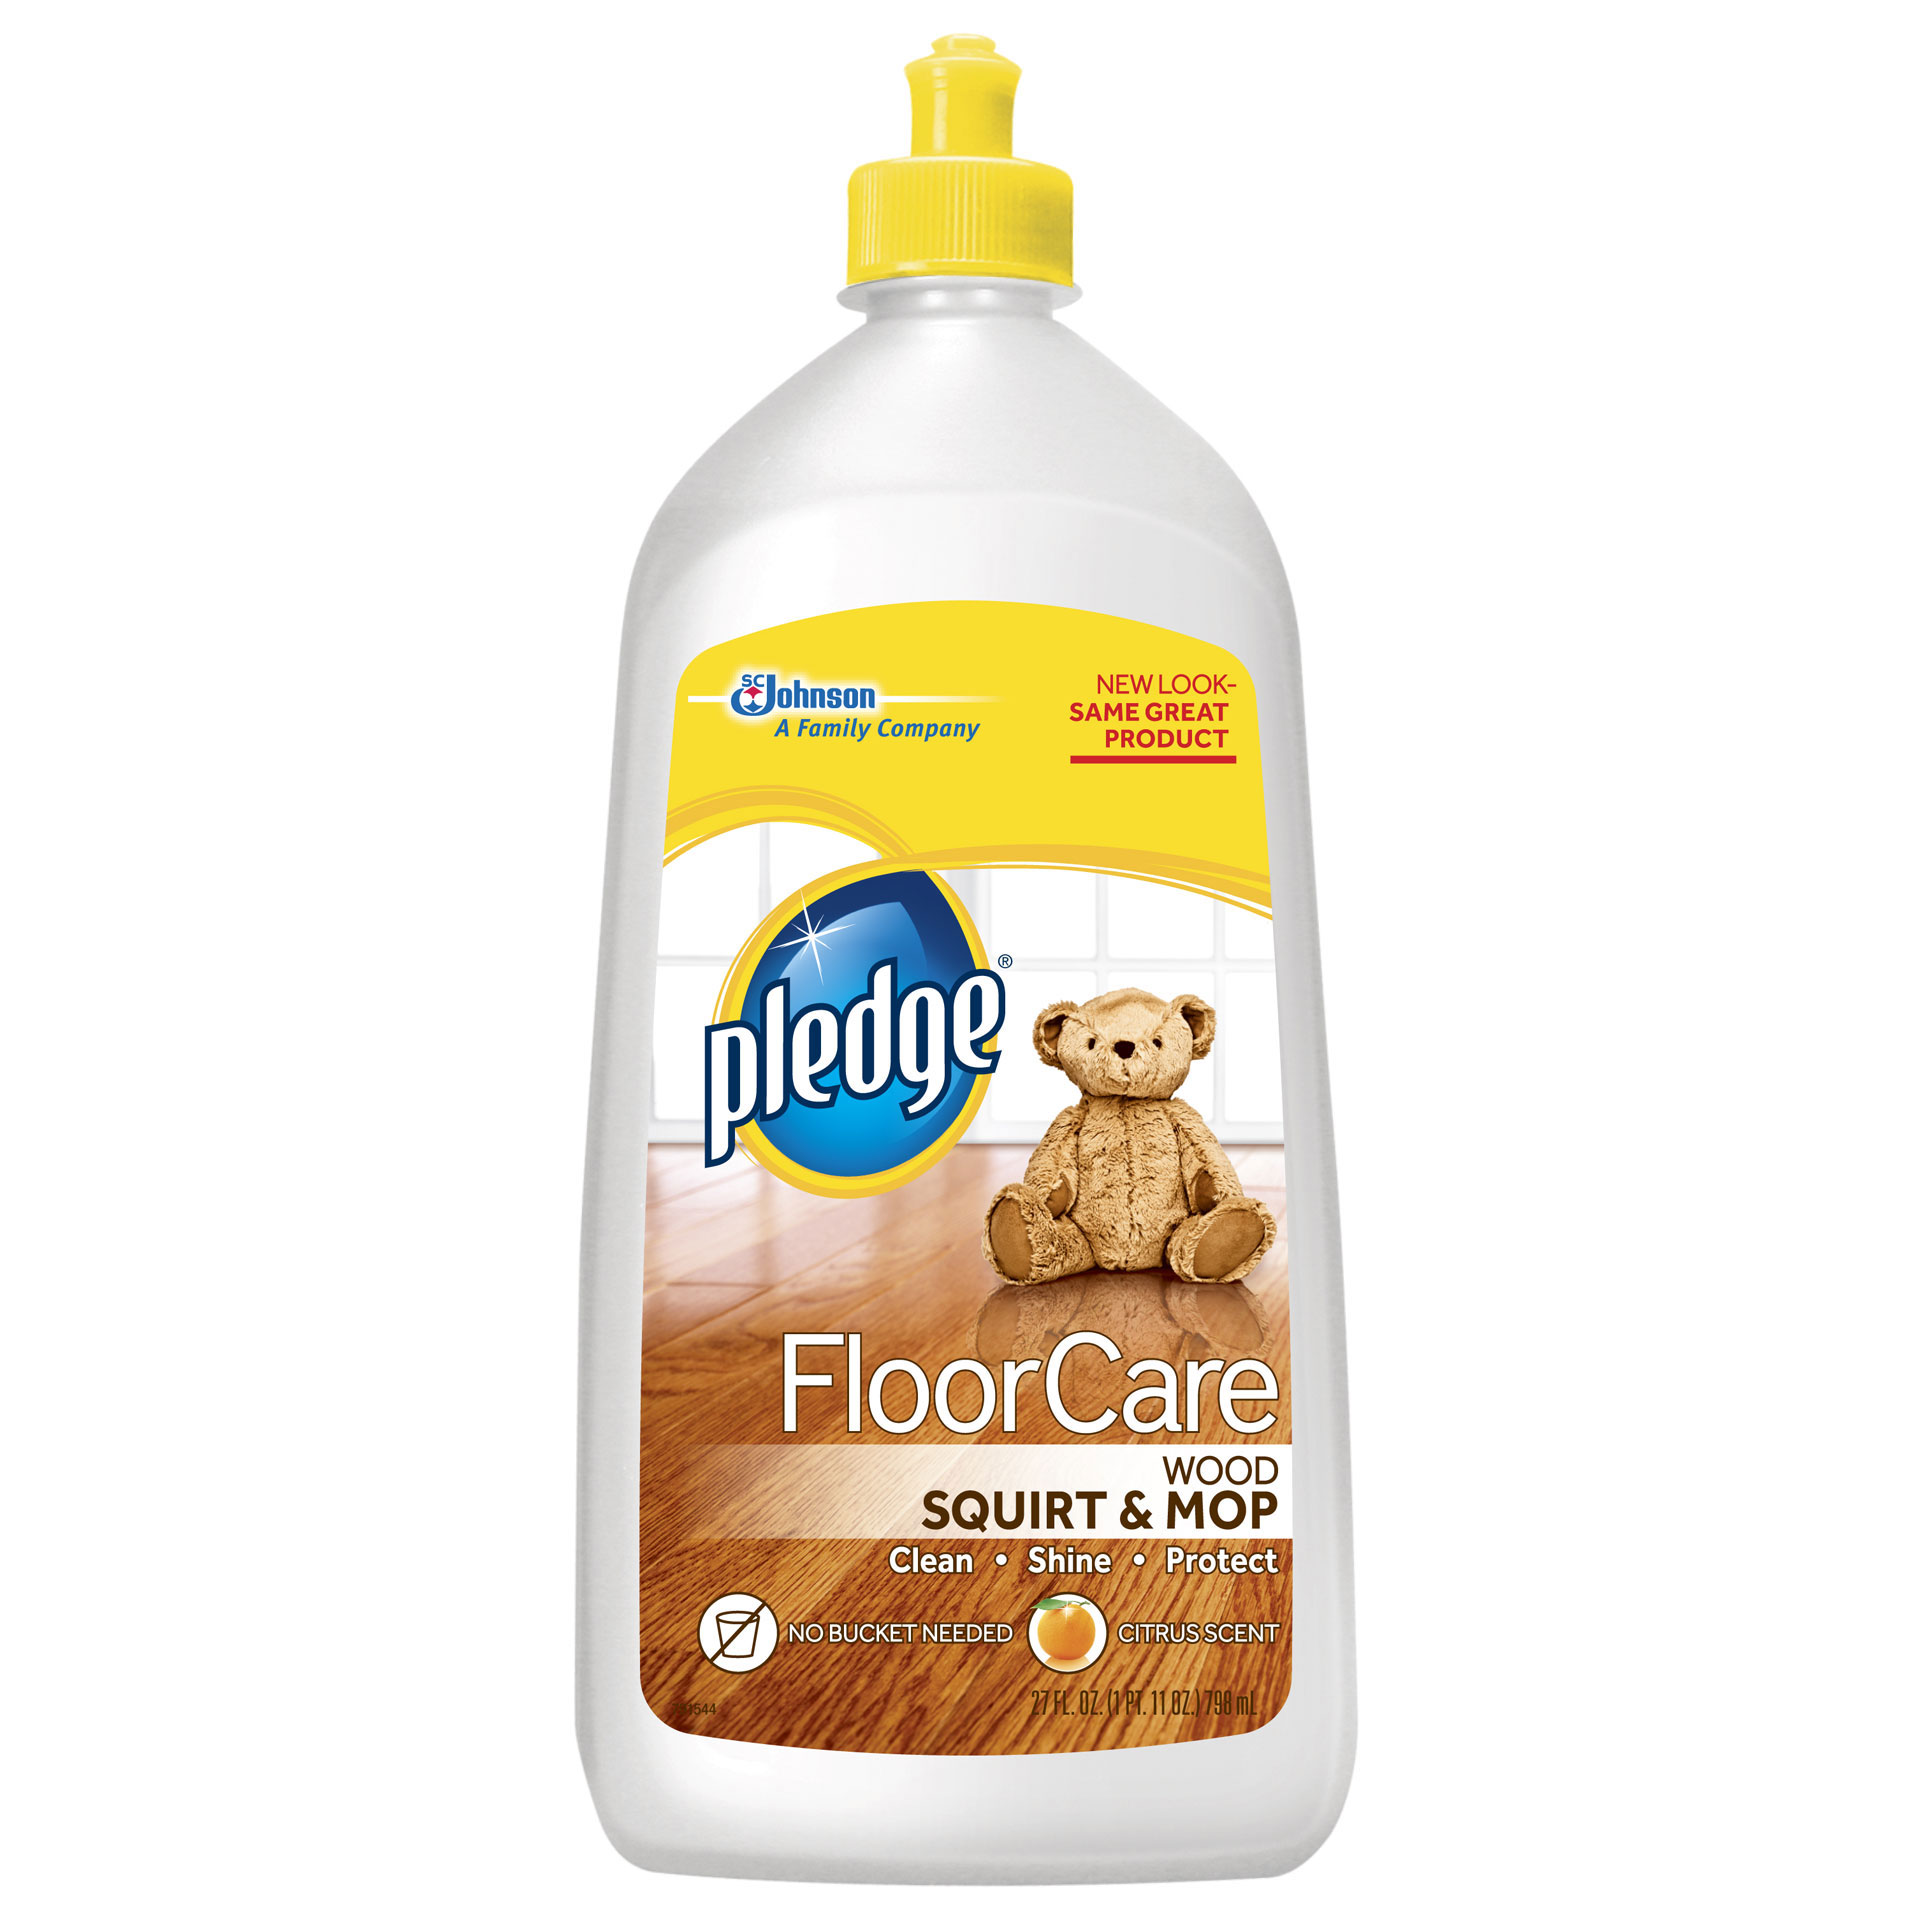 Pledge floorcare wood squirt and mop review for Floor cleaning